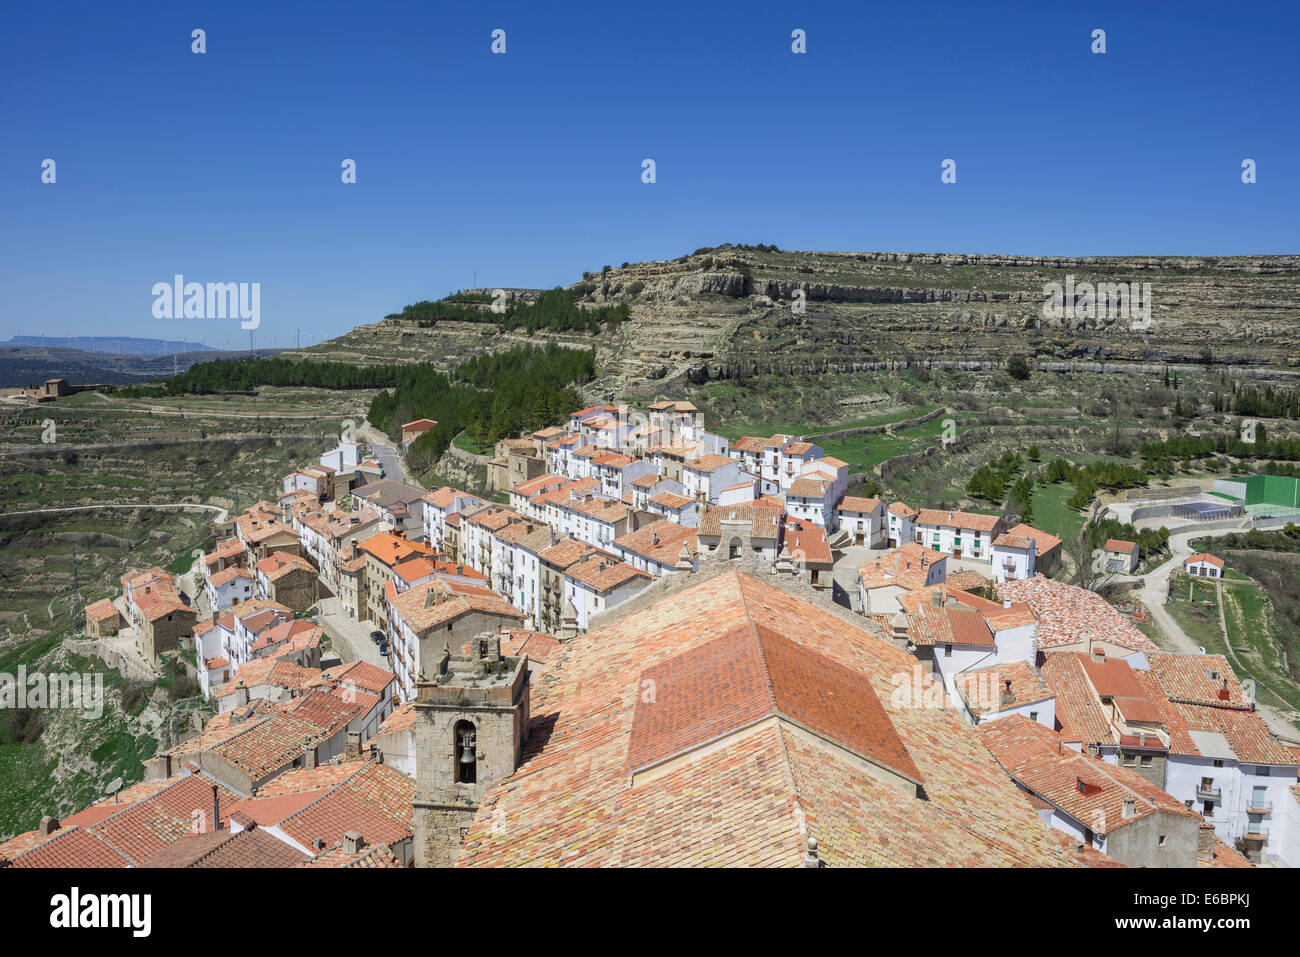 View of the houses in the mountain village of Ares del Maestre, Castelló, Spain - Stock Image